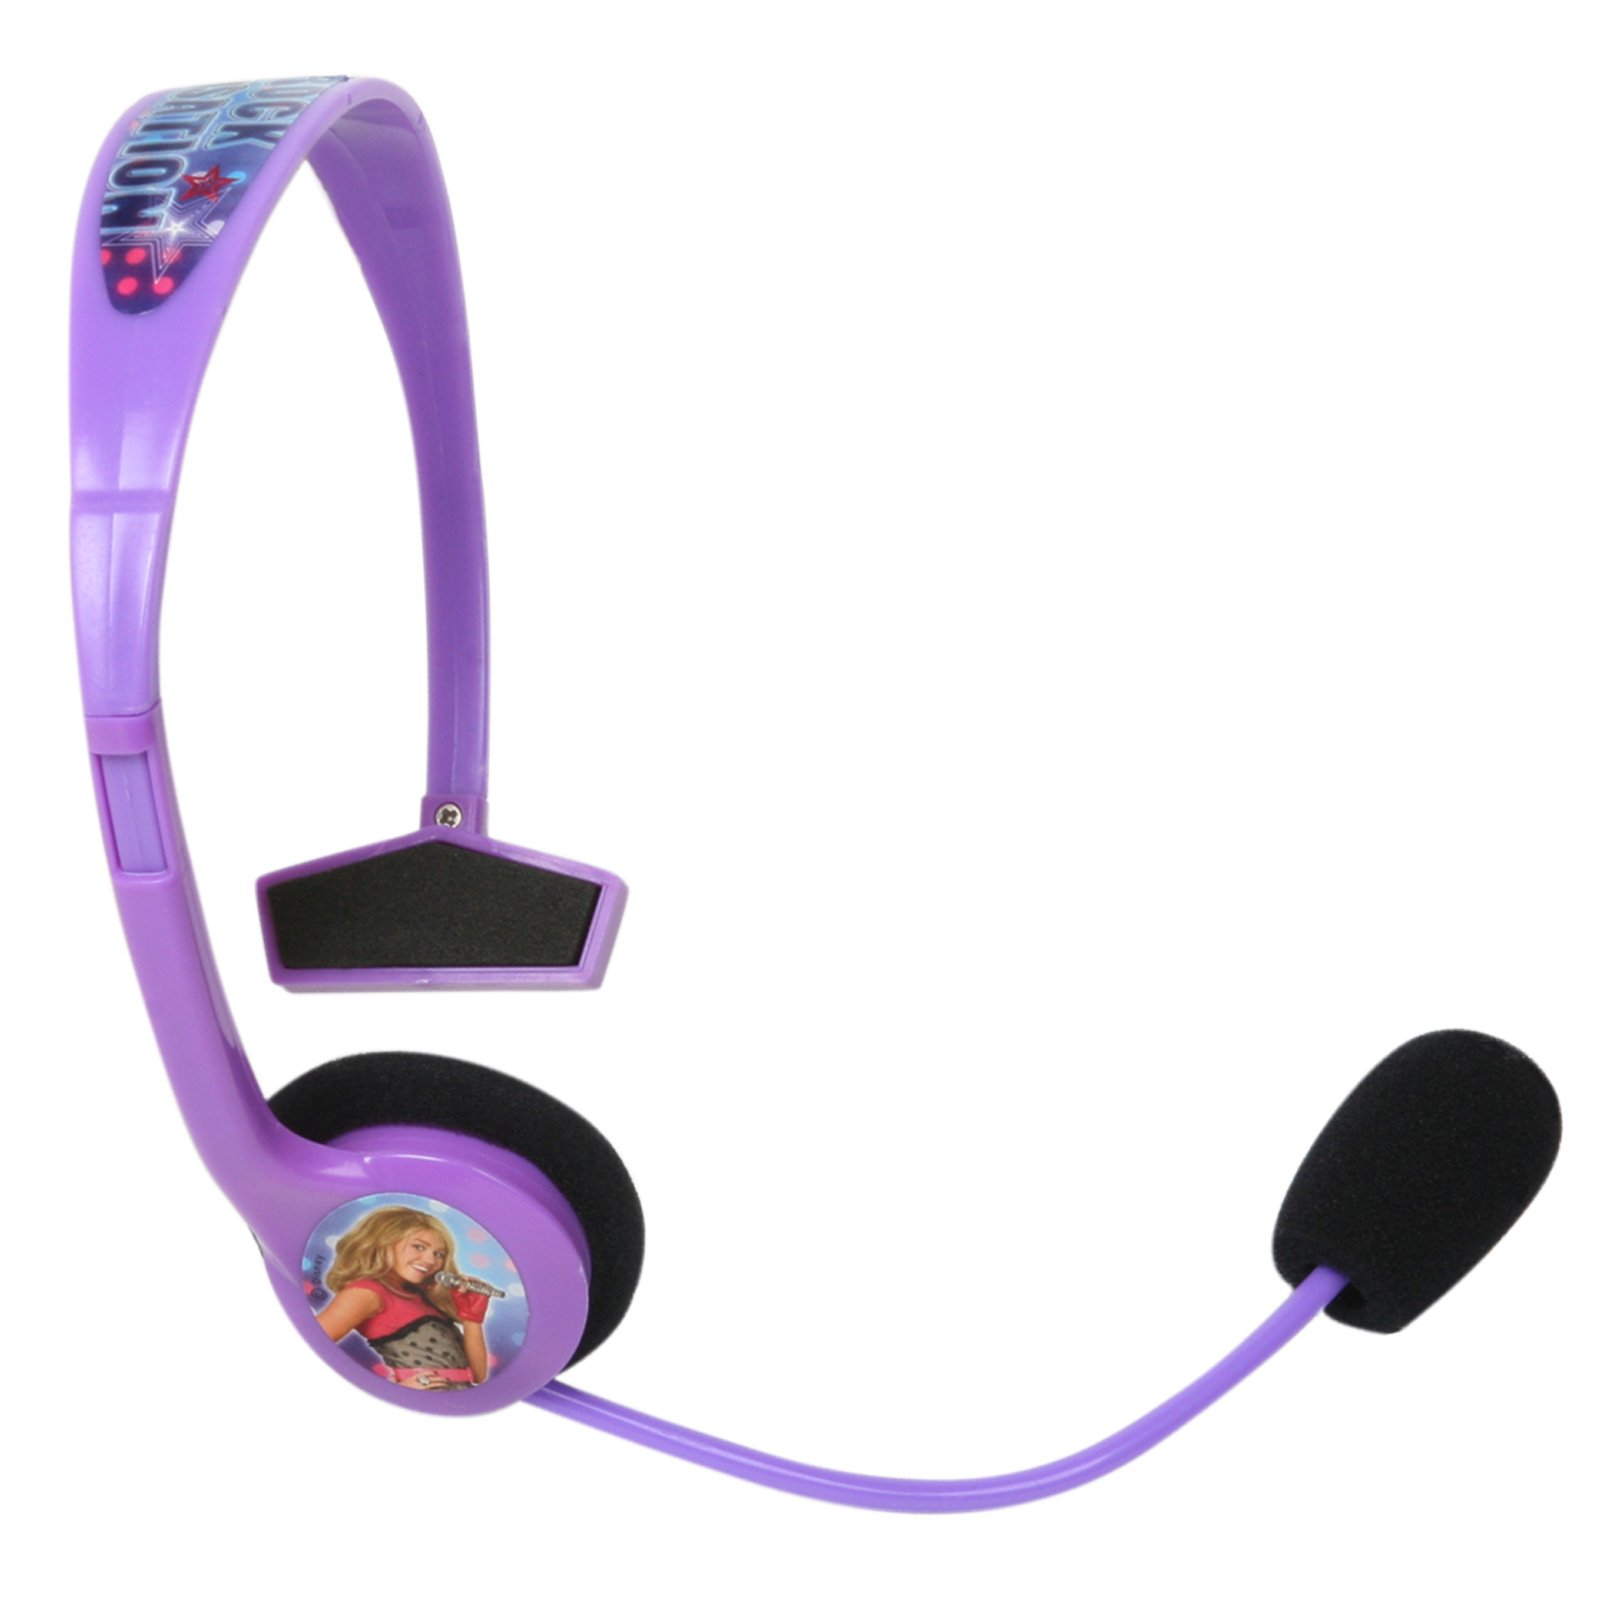 Hannah Montana - Rock the Stage Headset (1 count)